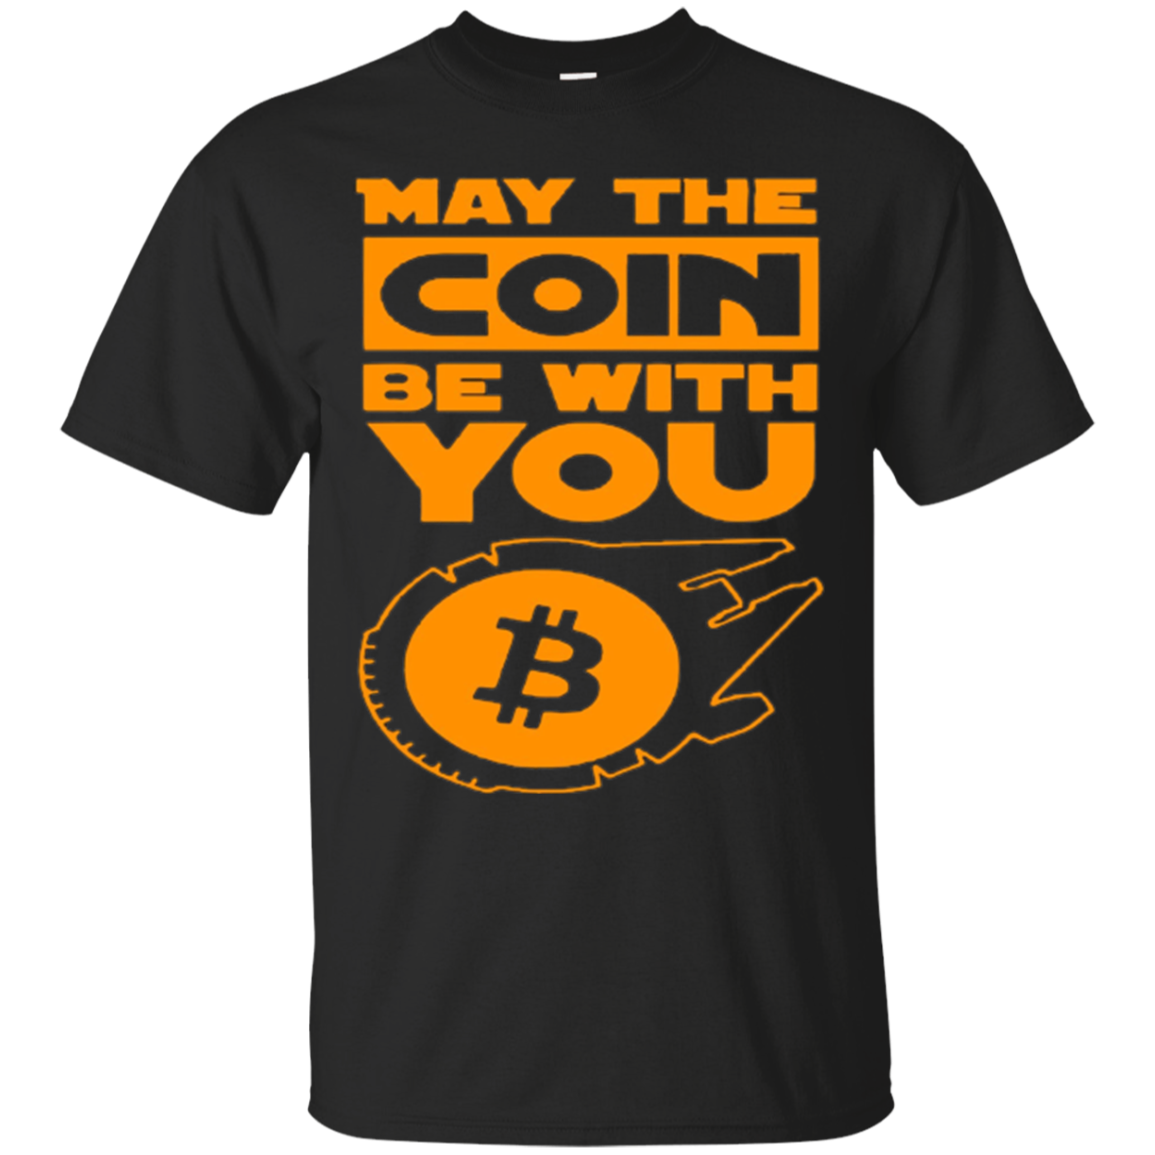 Bitcoin tshirt May the coin be with you bitcoin t-shirt